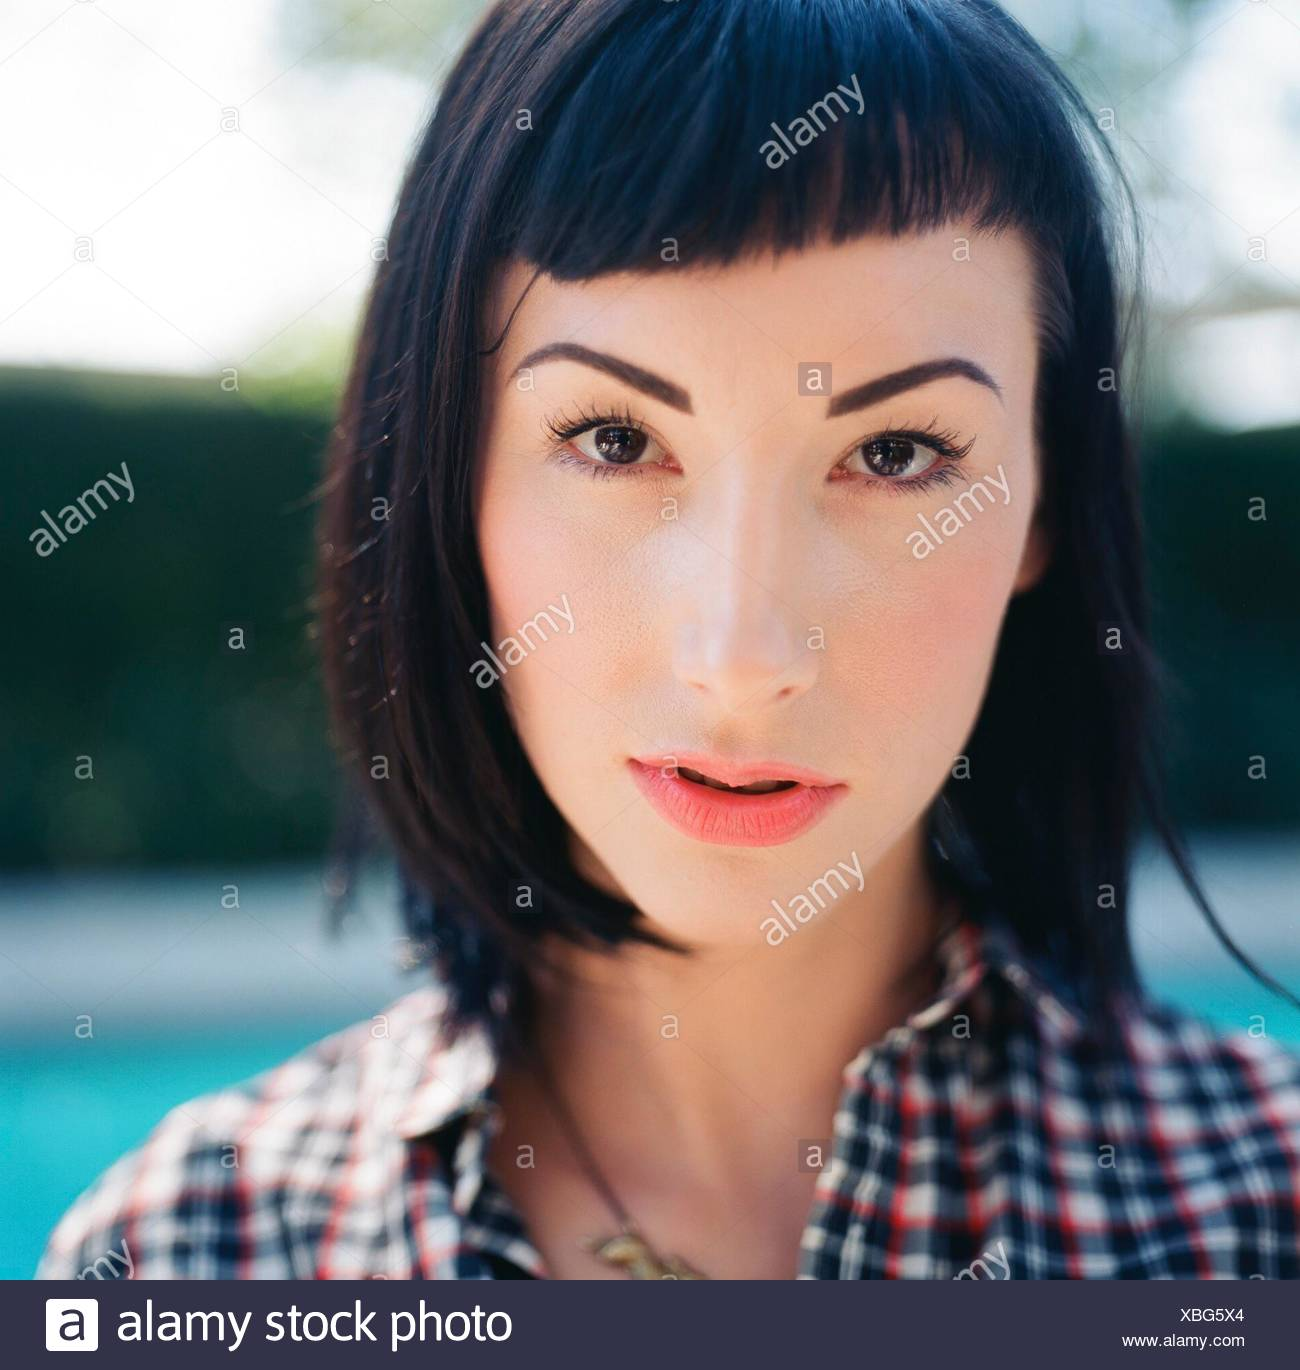 Extreme Close Up Portrait Of A young woman Photo Stock